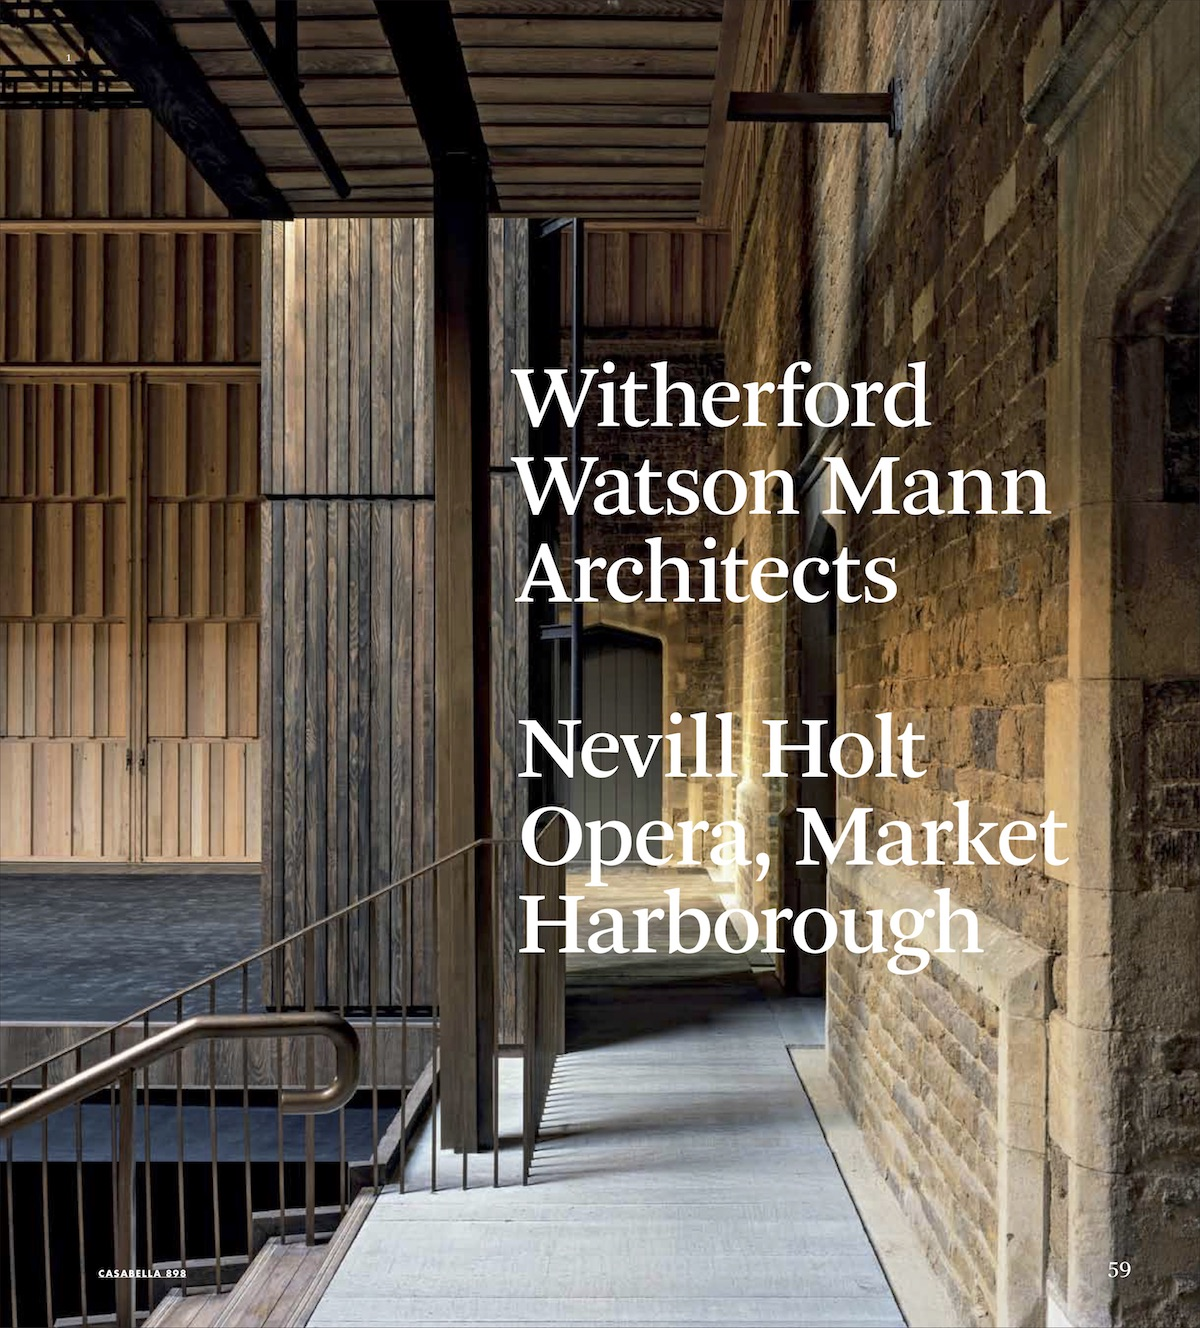 898 | WITHERFORD WATSON MANN